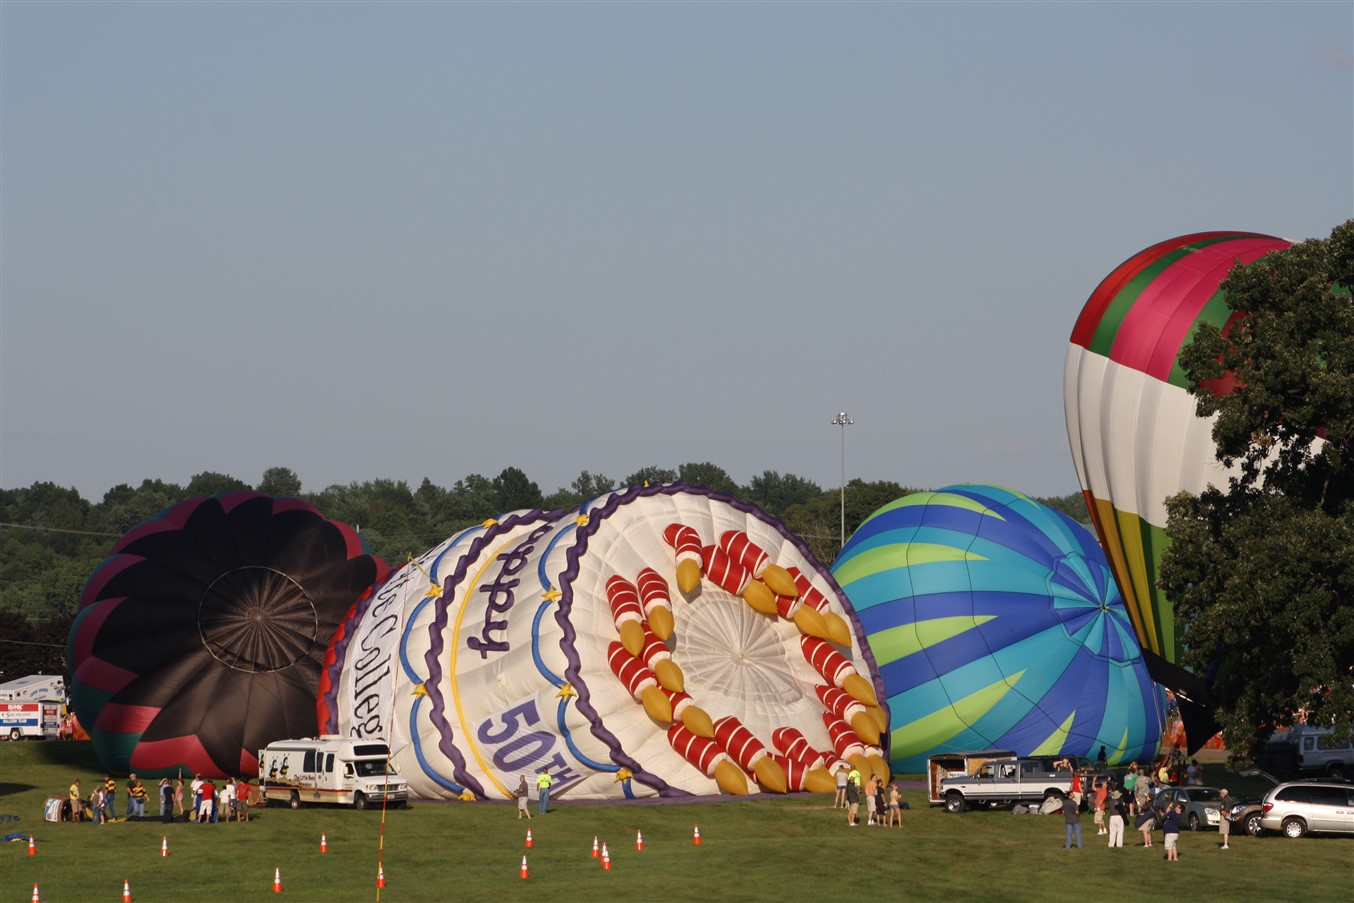 2011 07 30 Canton Hot Air Balloon Festival 19.jpg